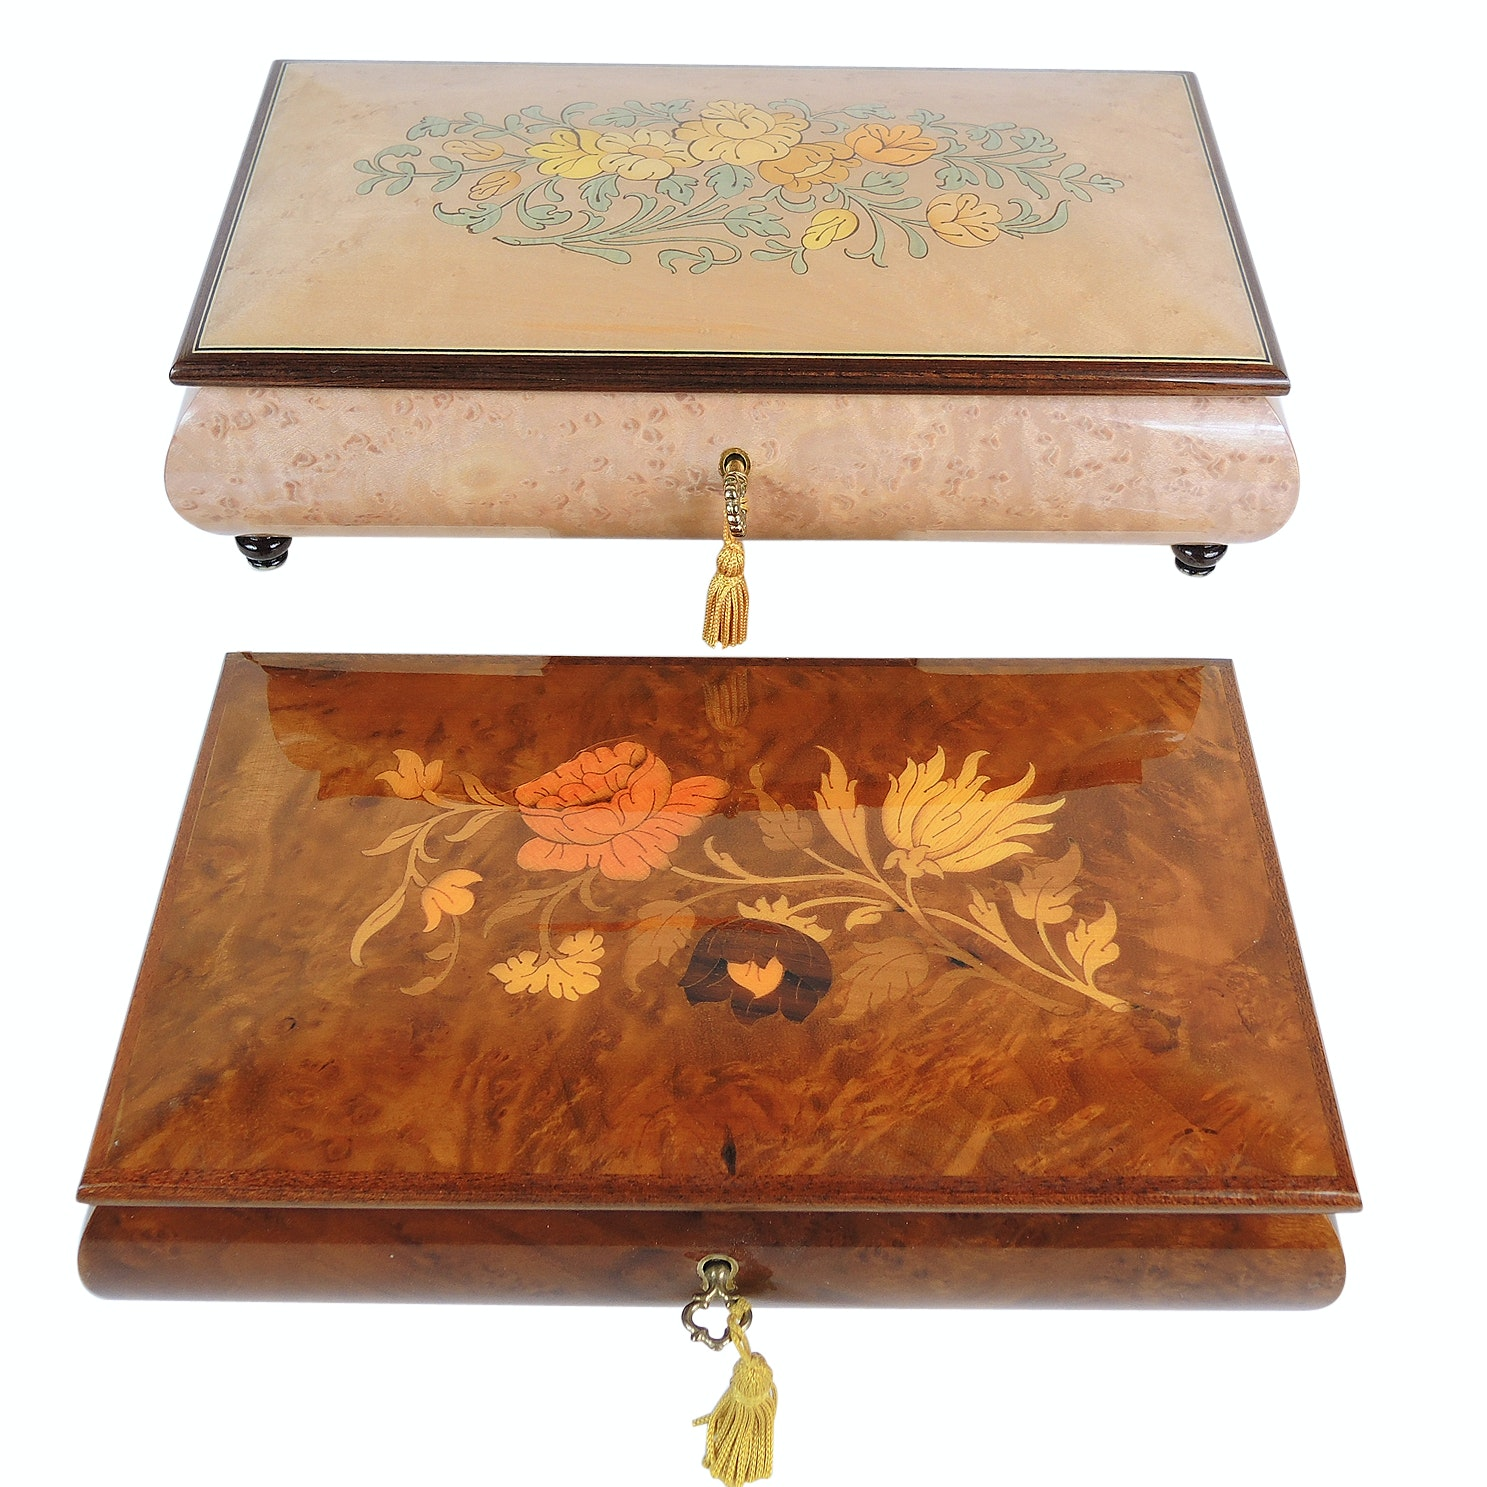 Two Wood Inlay Reuge Music Boxes with Keys